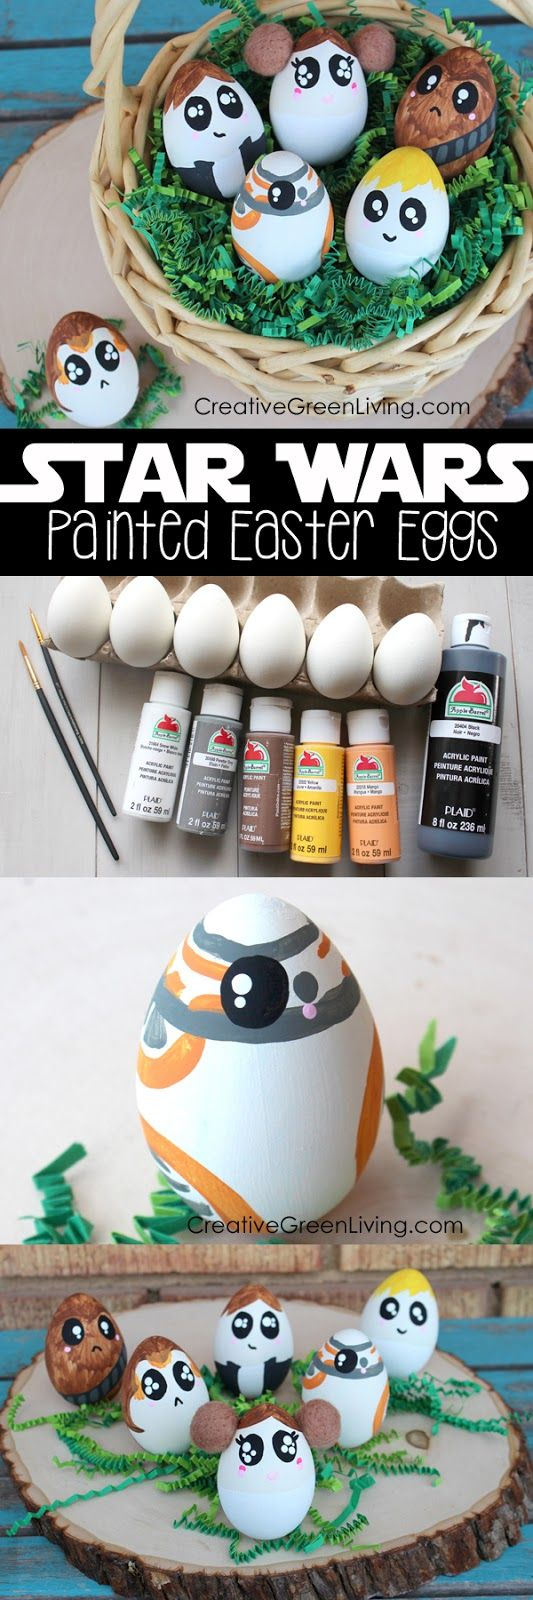 How to make DIY Star Wars Easter eggs - funny star wars crafts with characters from The Last jedi and the force awakens. I love all these awesome ideas!